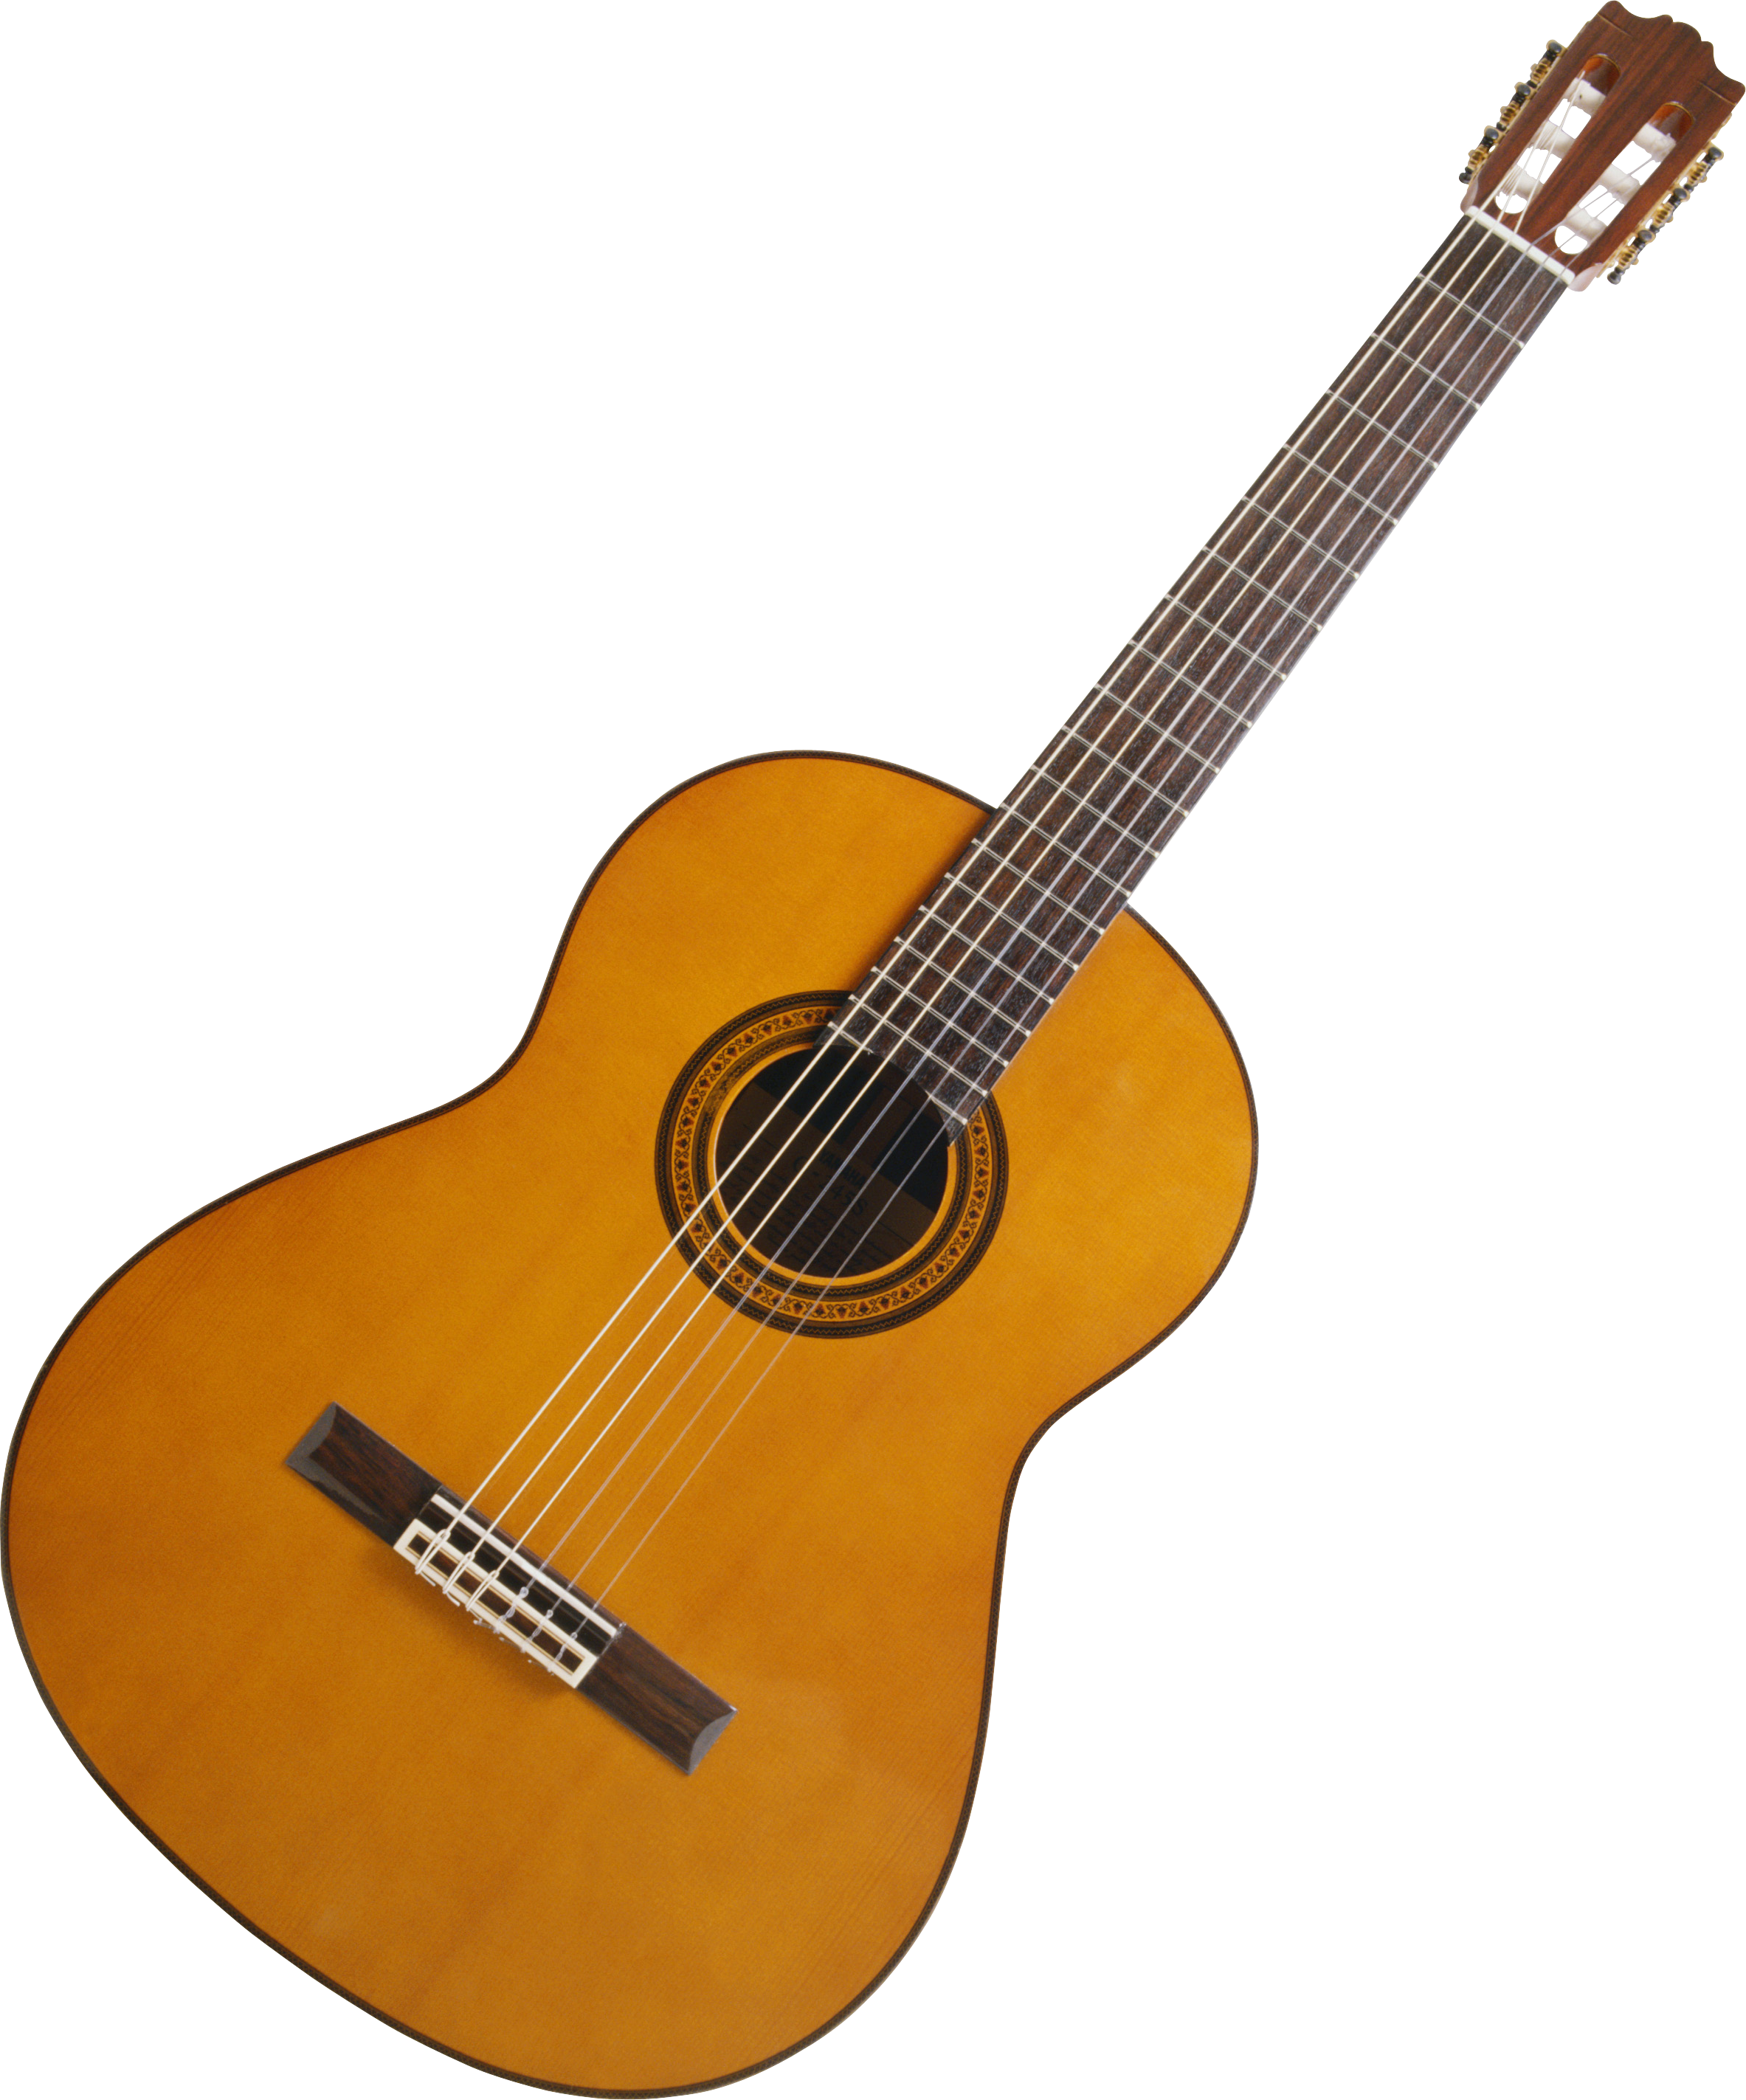 Acoustic wooden guitar PNG image